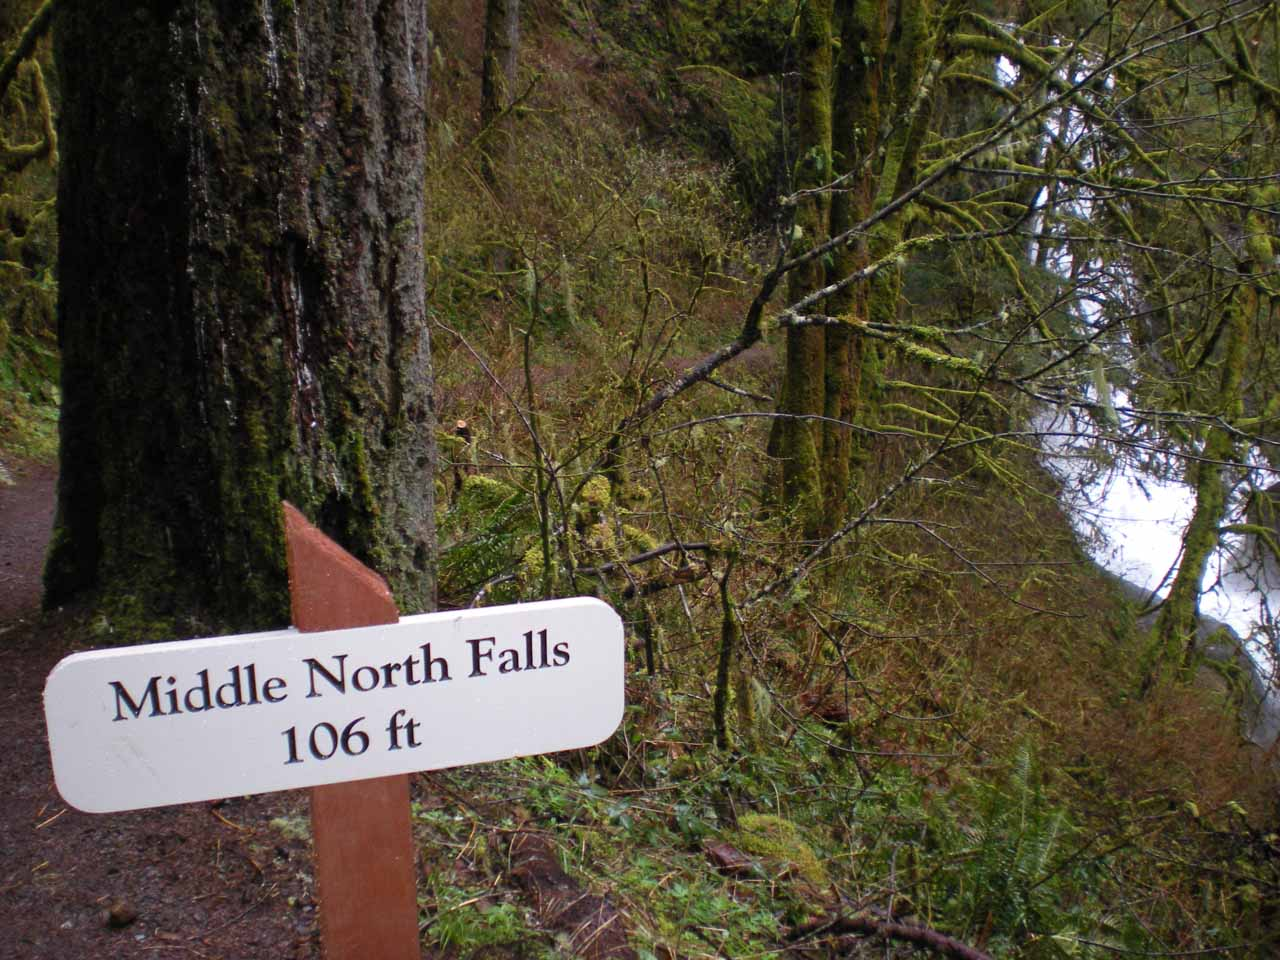 Signpost indicating Middle North Falls is 106ft